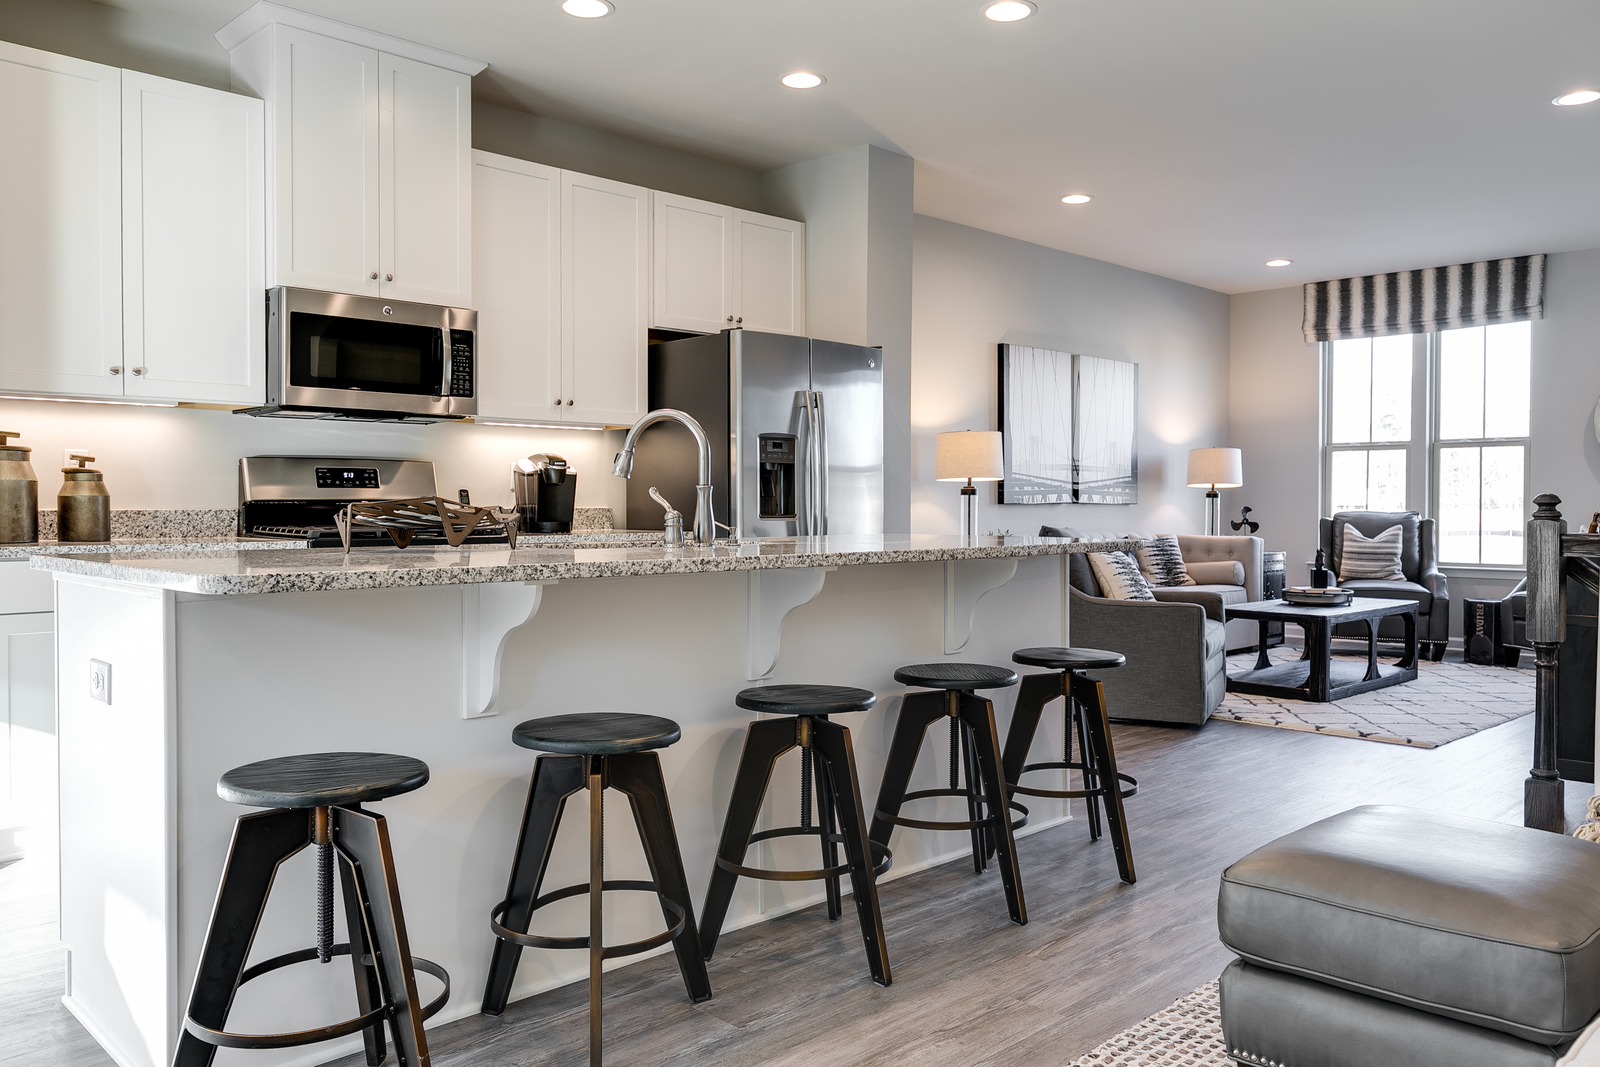 New Homes For Sale At Riverwood Townhomes In Charlottesville Va